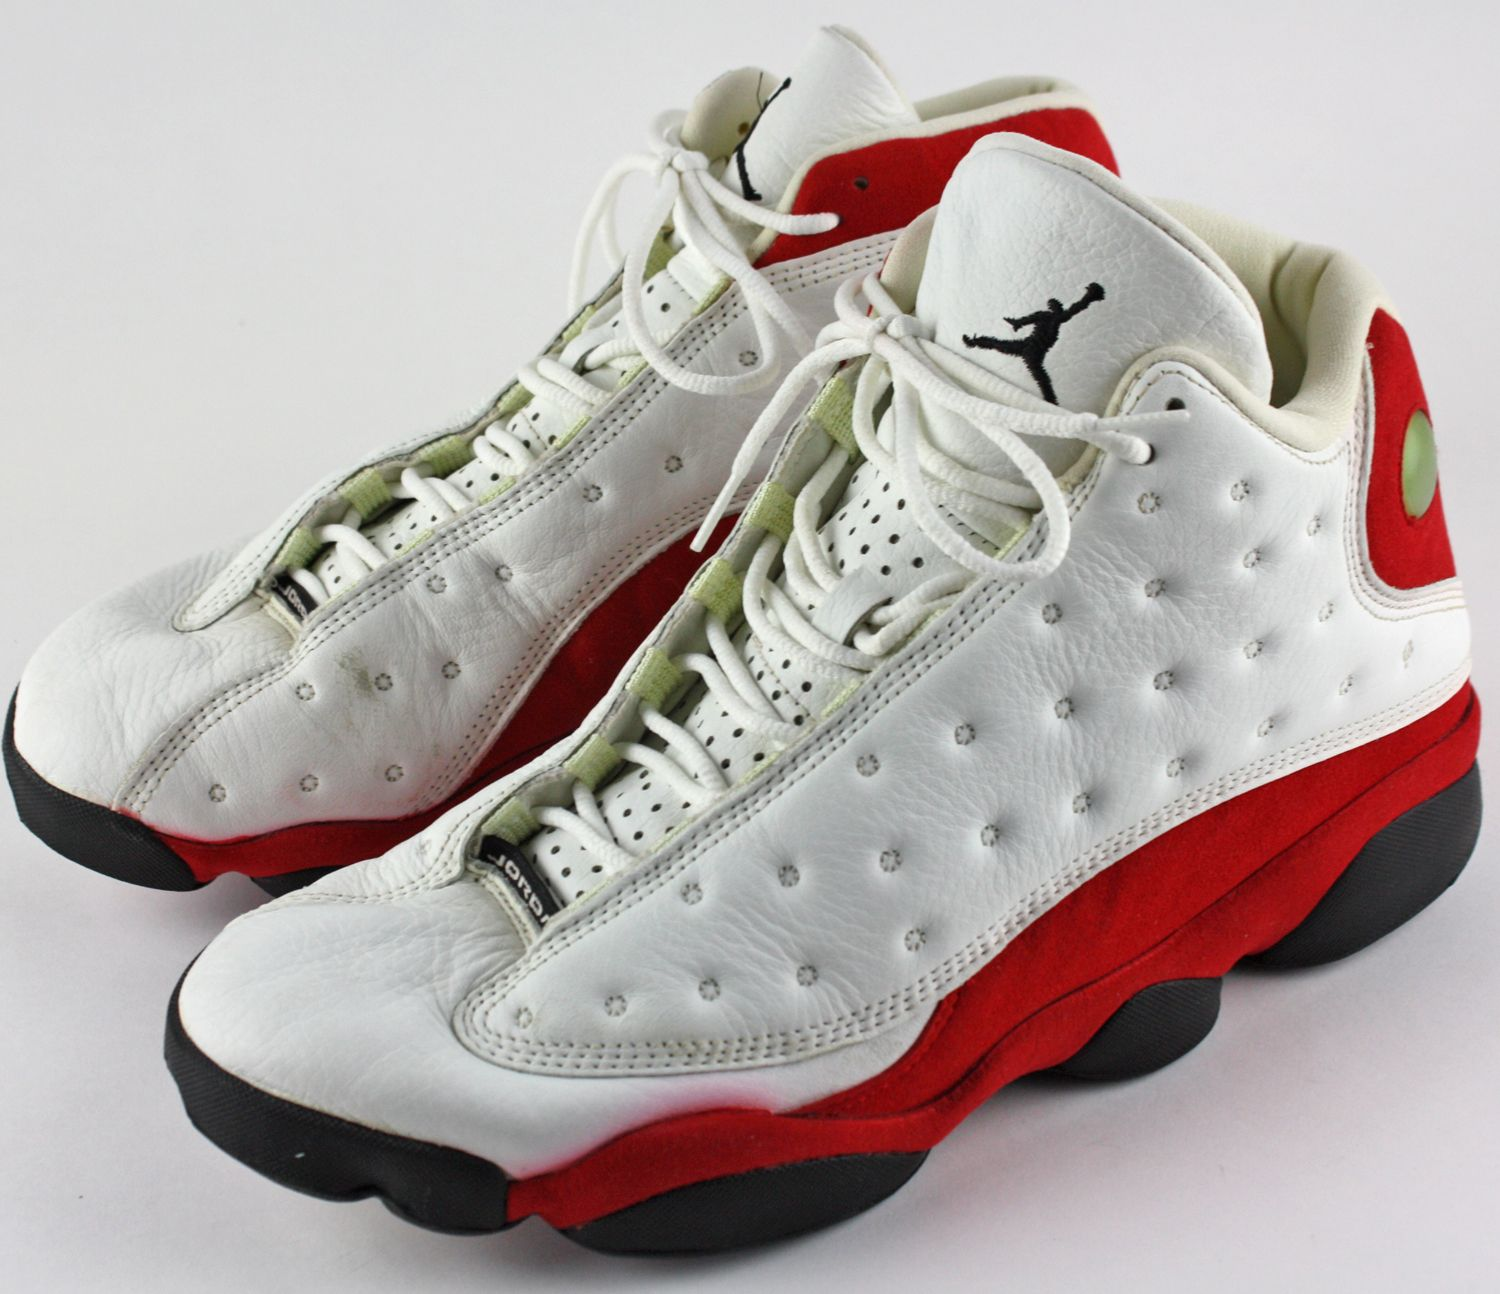 3be0c2637e7d35 Michael Jordan c.1997-98 Game Used Personal Model Air Jordan XIII Sneakers  ...